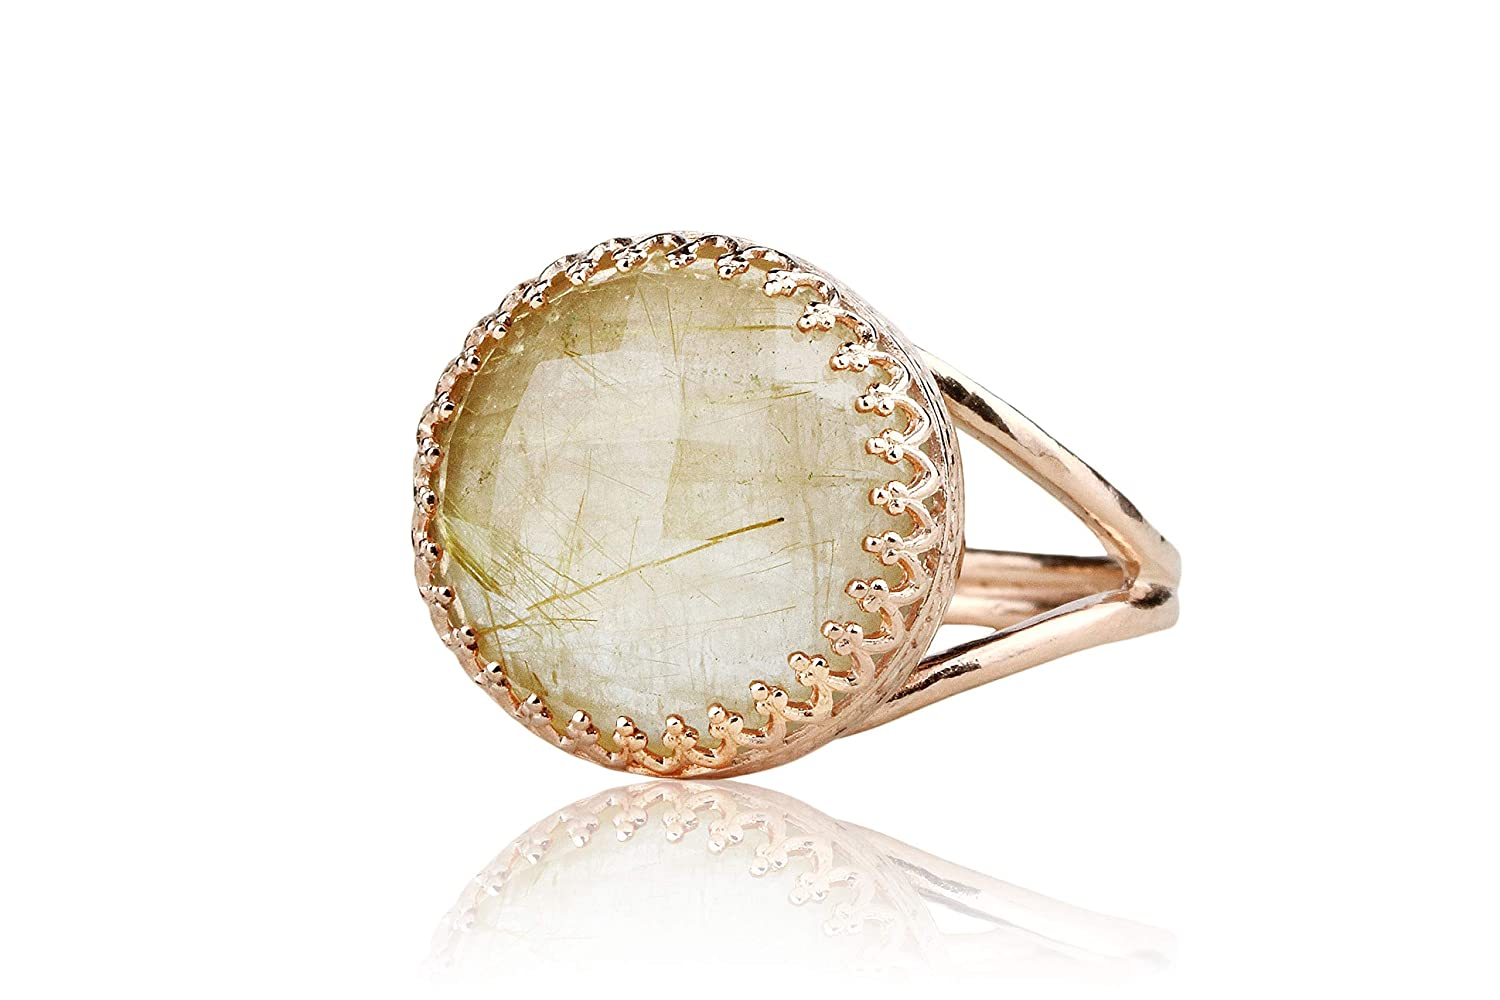 Bridal Anemone Jewelry Timeless Rutilated Quartz Ring Handmade Jewelry for Women Mom Ring Free Gift Box Anniversary BFF Birthday 14K Rose Gold-filled Double Band